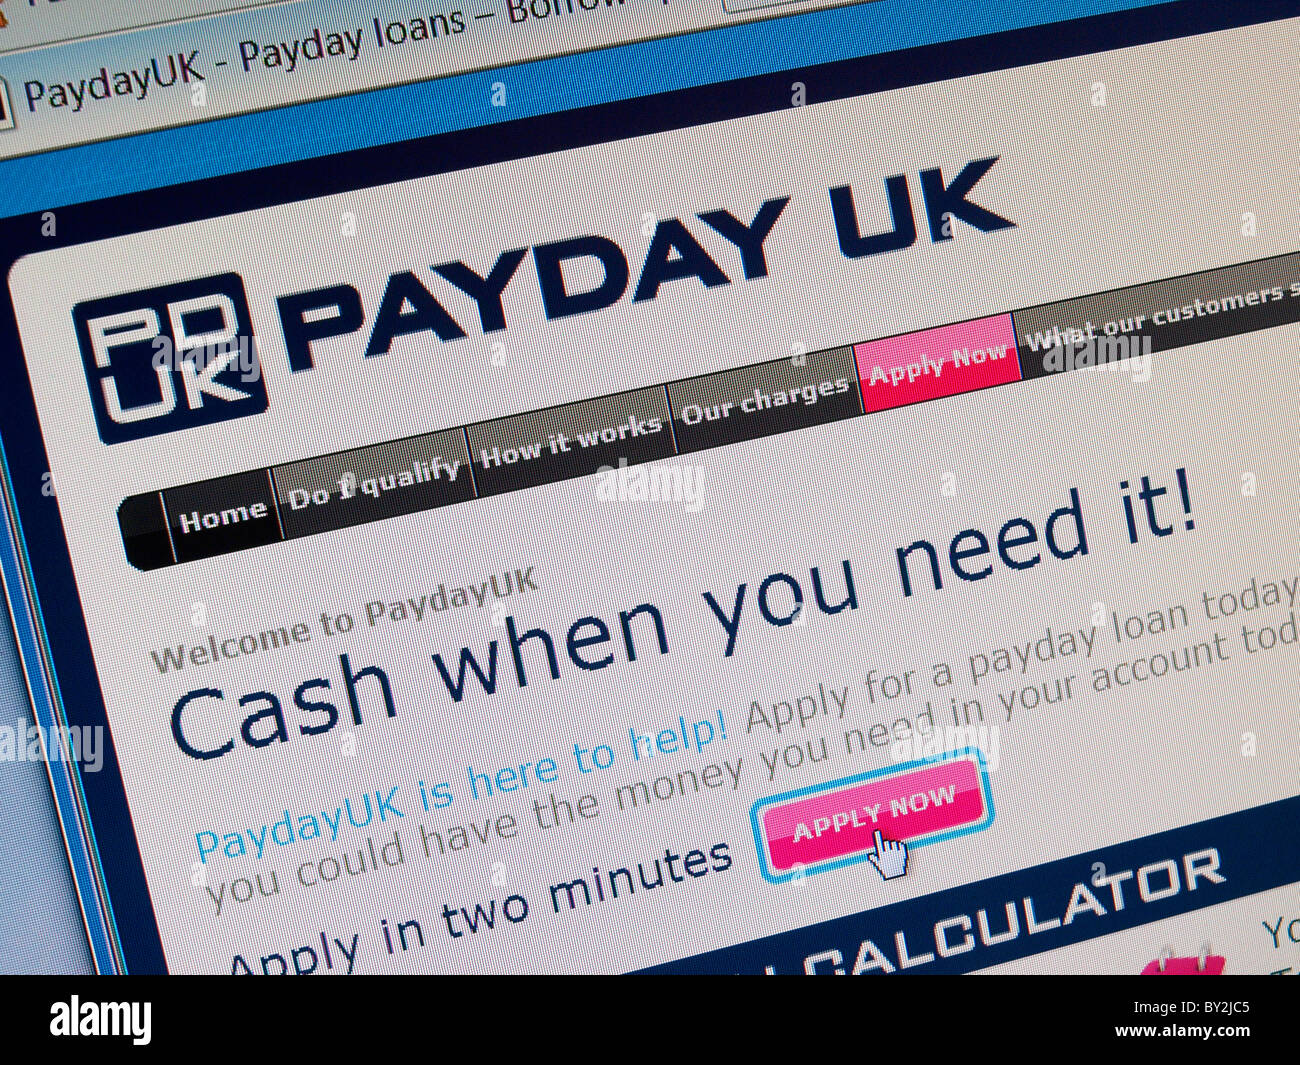 Emergency payday loans for money emergency picture 1